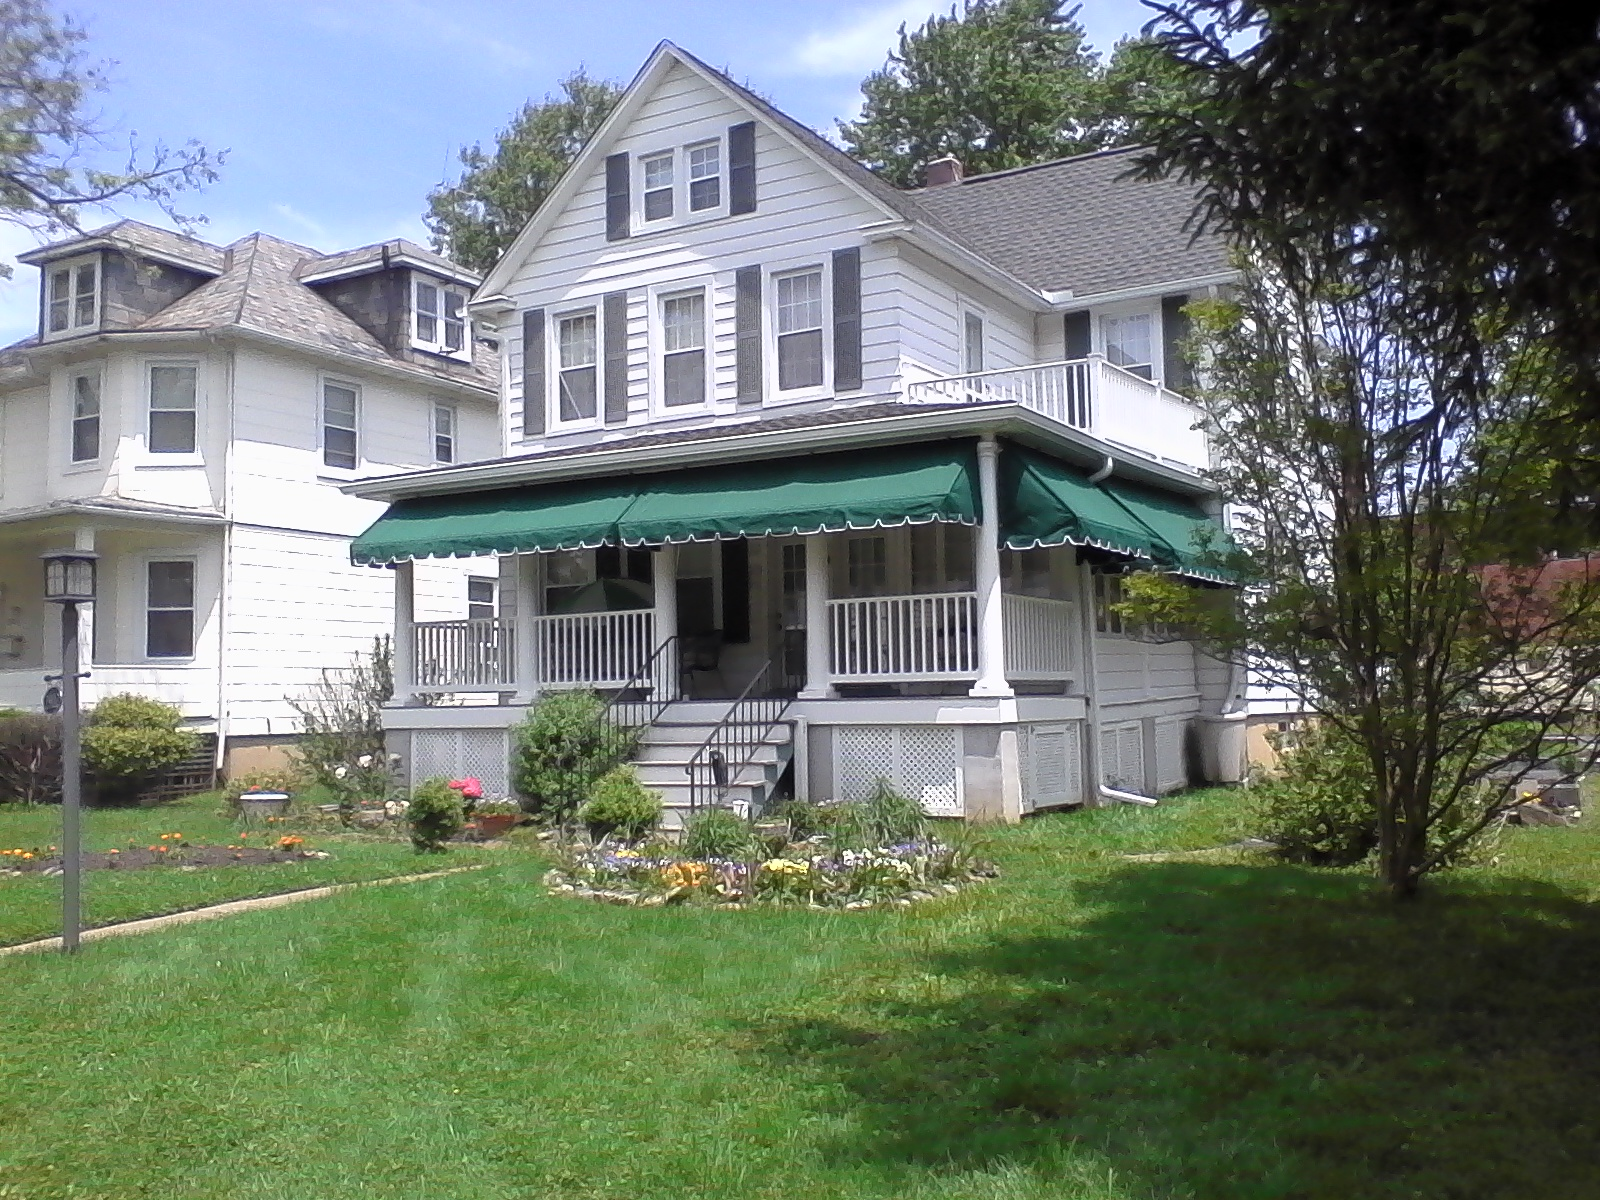 Green Front Porch Awnings